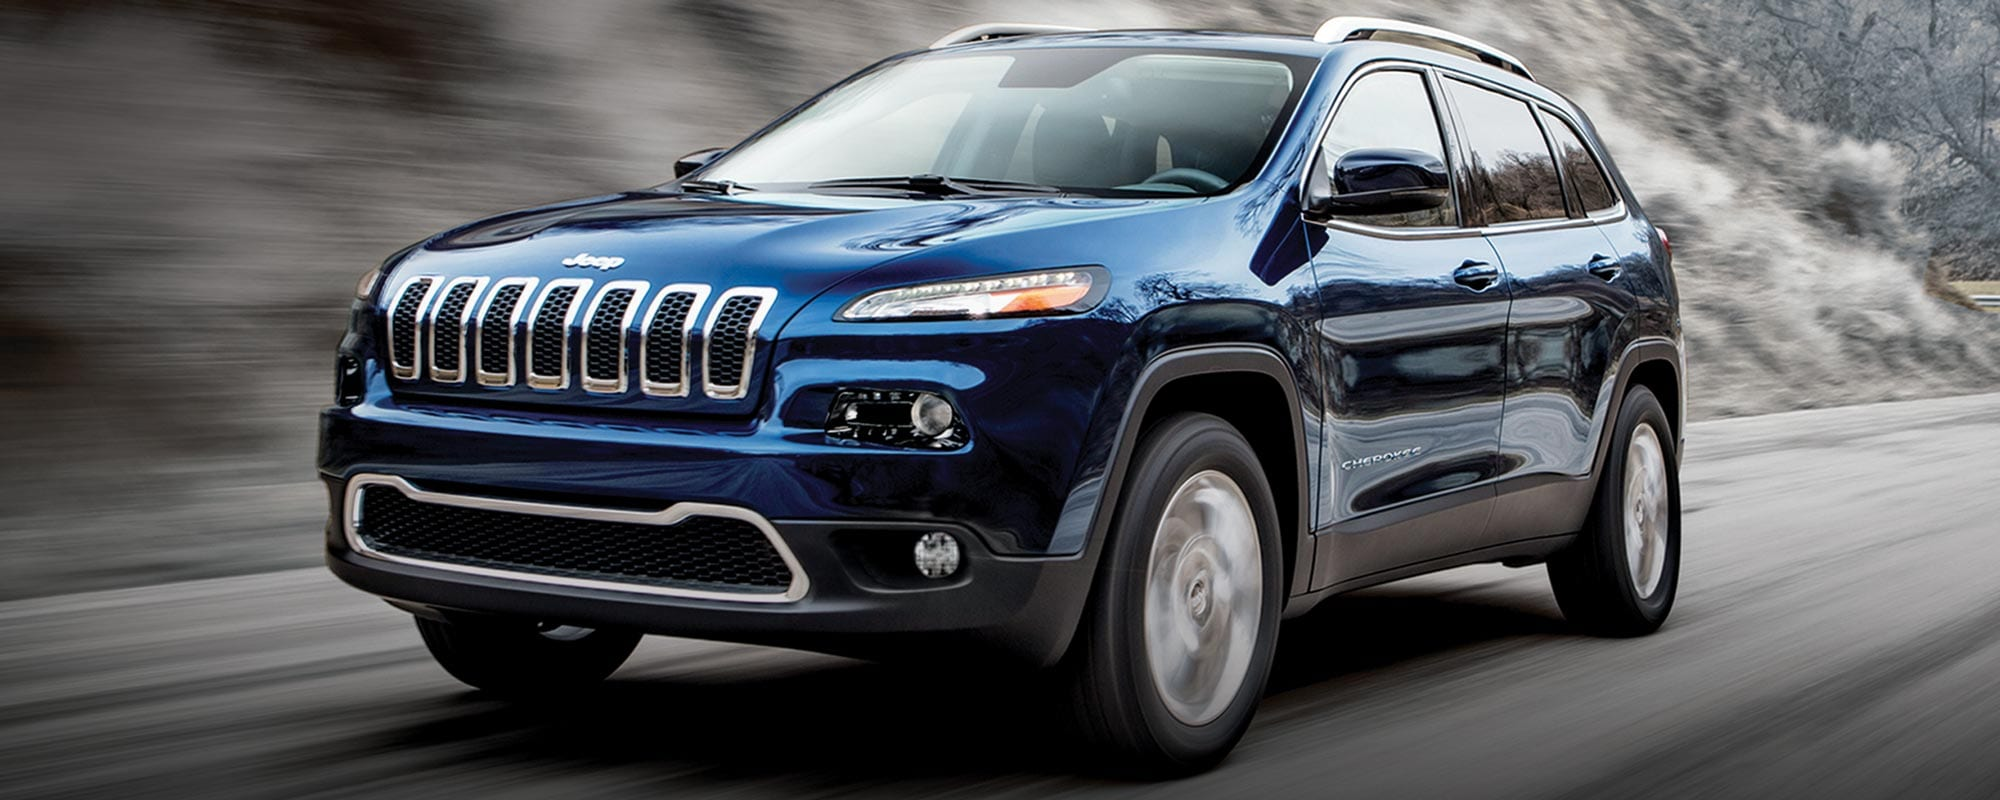 2016 Jeep Cherokee Chrysler Model Possibly In The Works